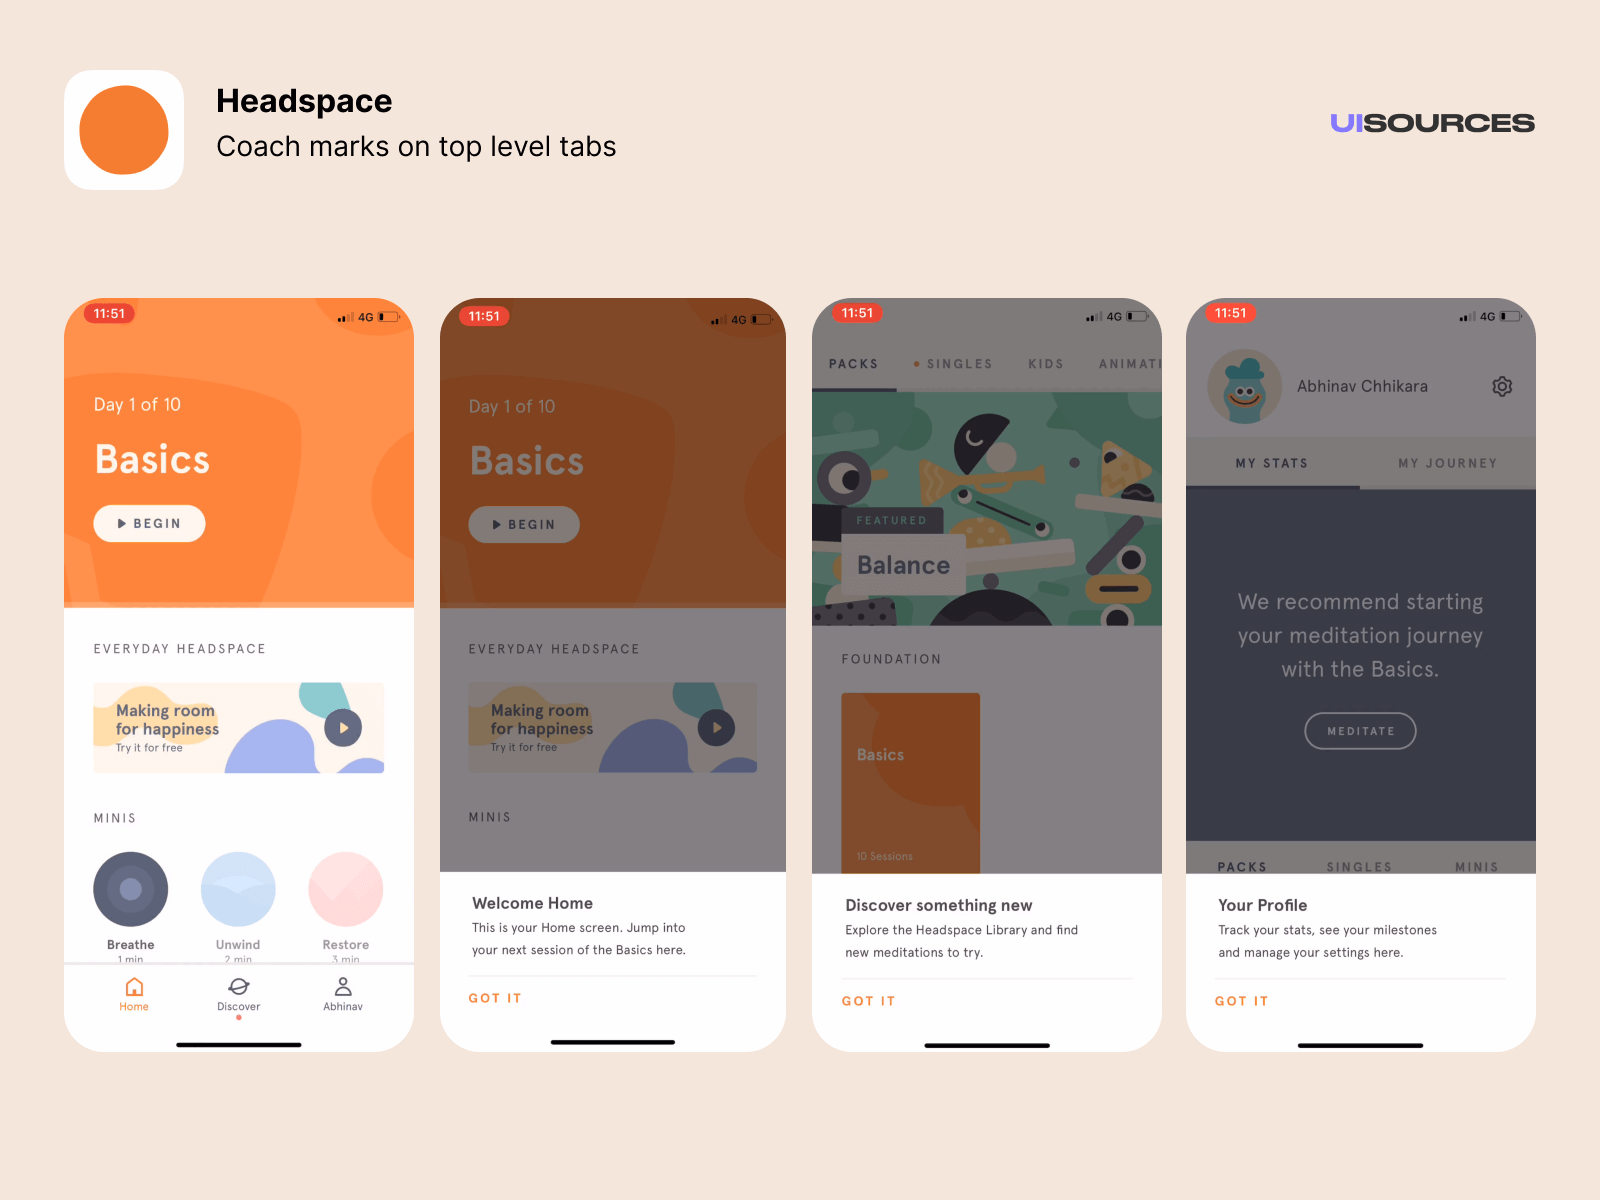 06 headspace coach marks top level tabs